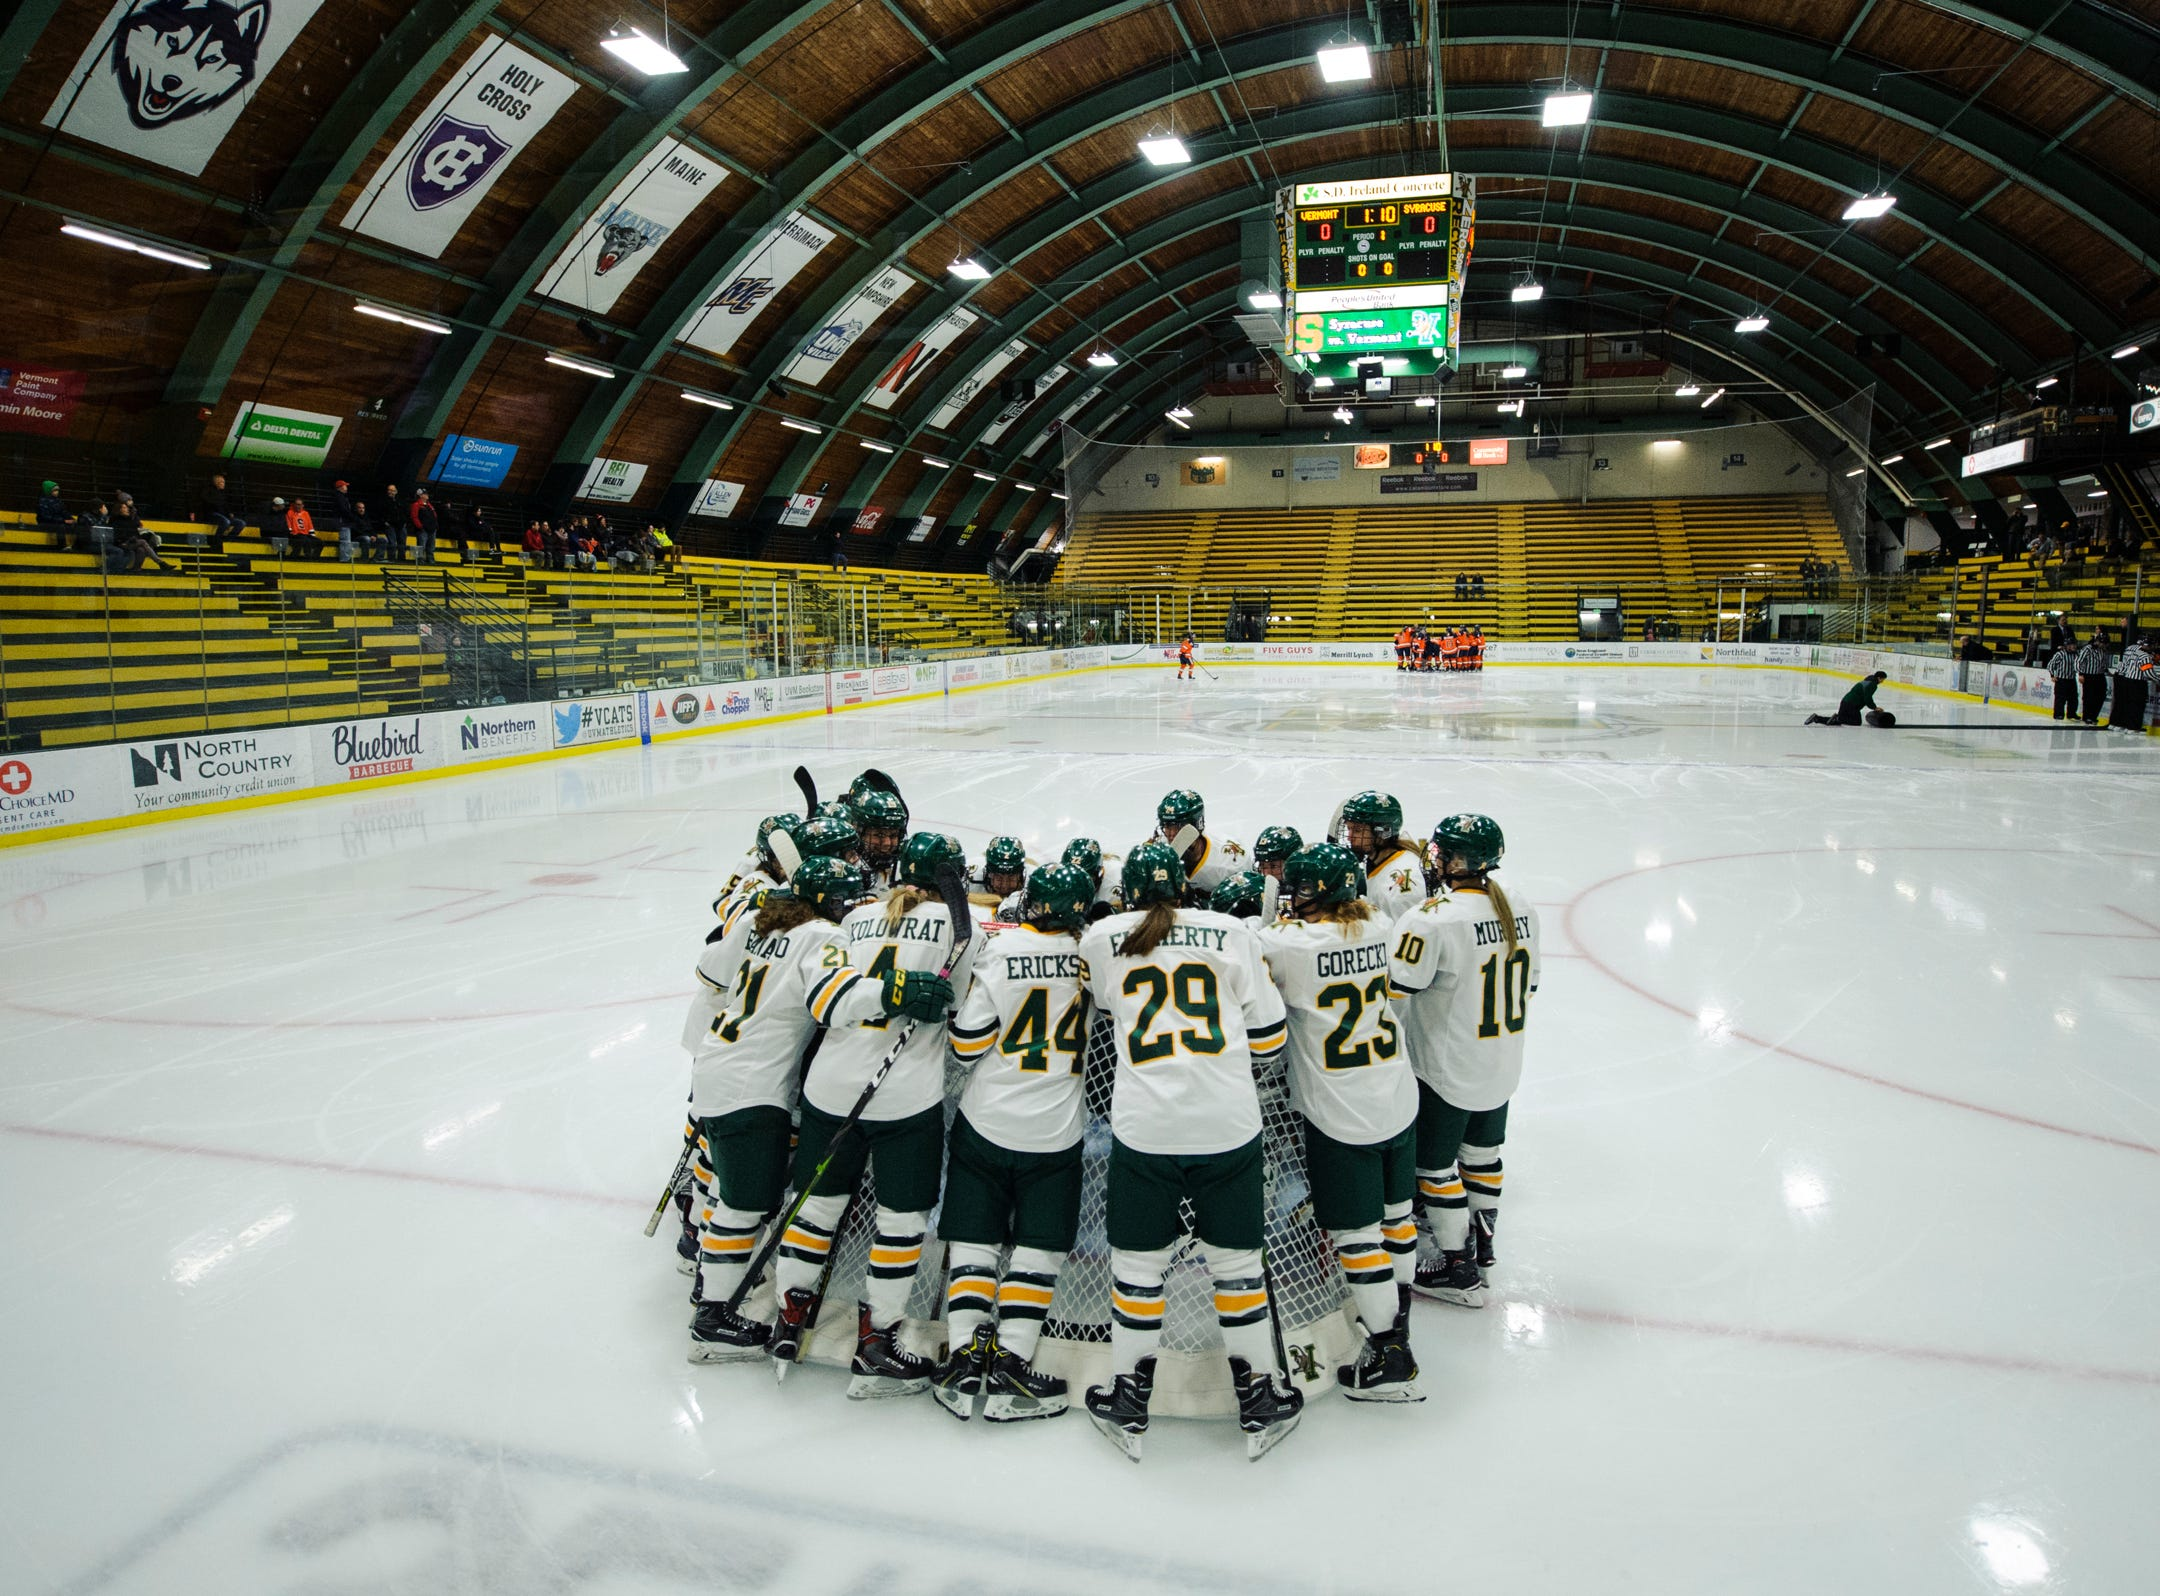 Vermont huddles together during the women's hockey game between the Syracuse Orange and the Vermont Catamounts at Gutterson Field House on Friday night November 23, 2018 in Burlington.